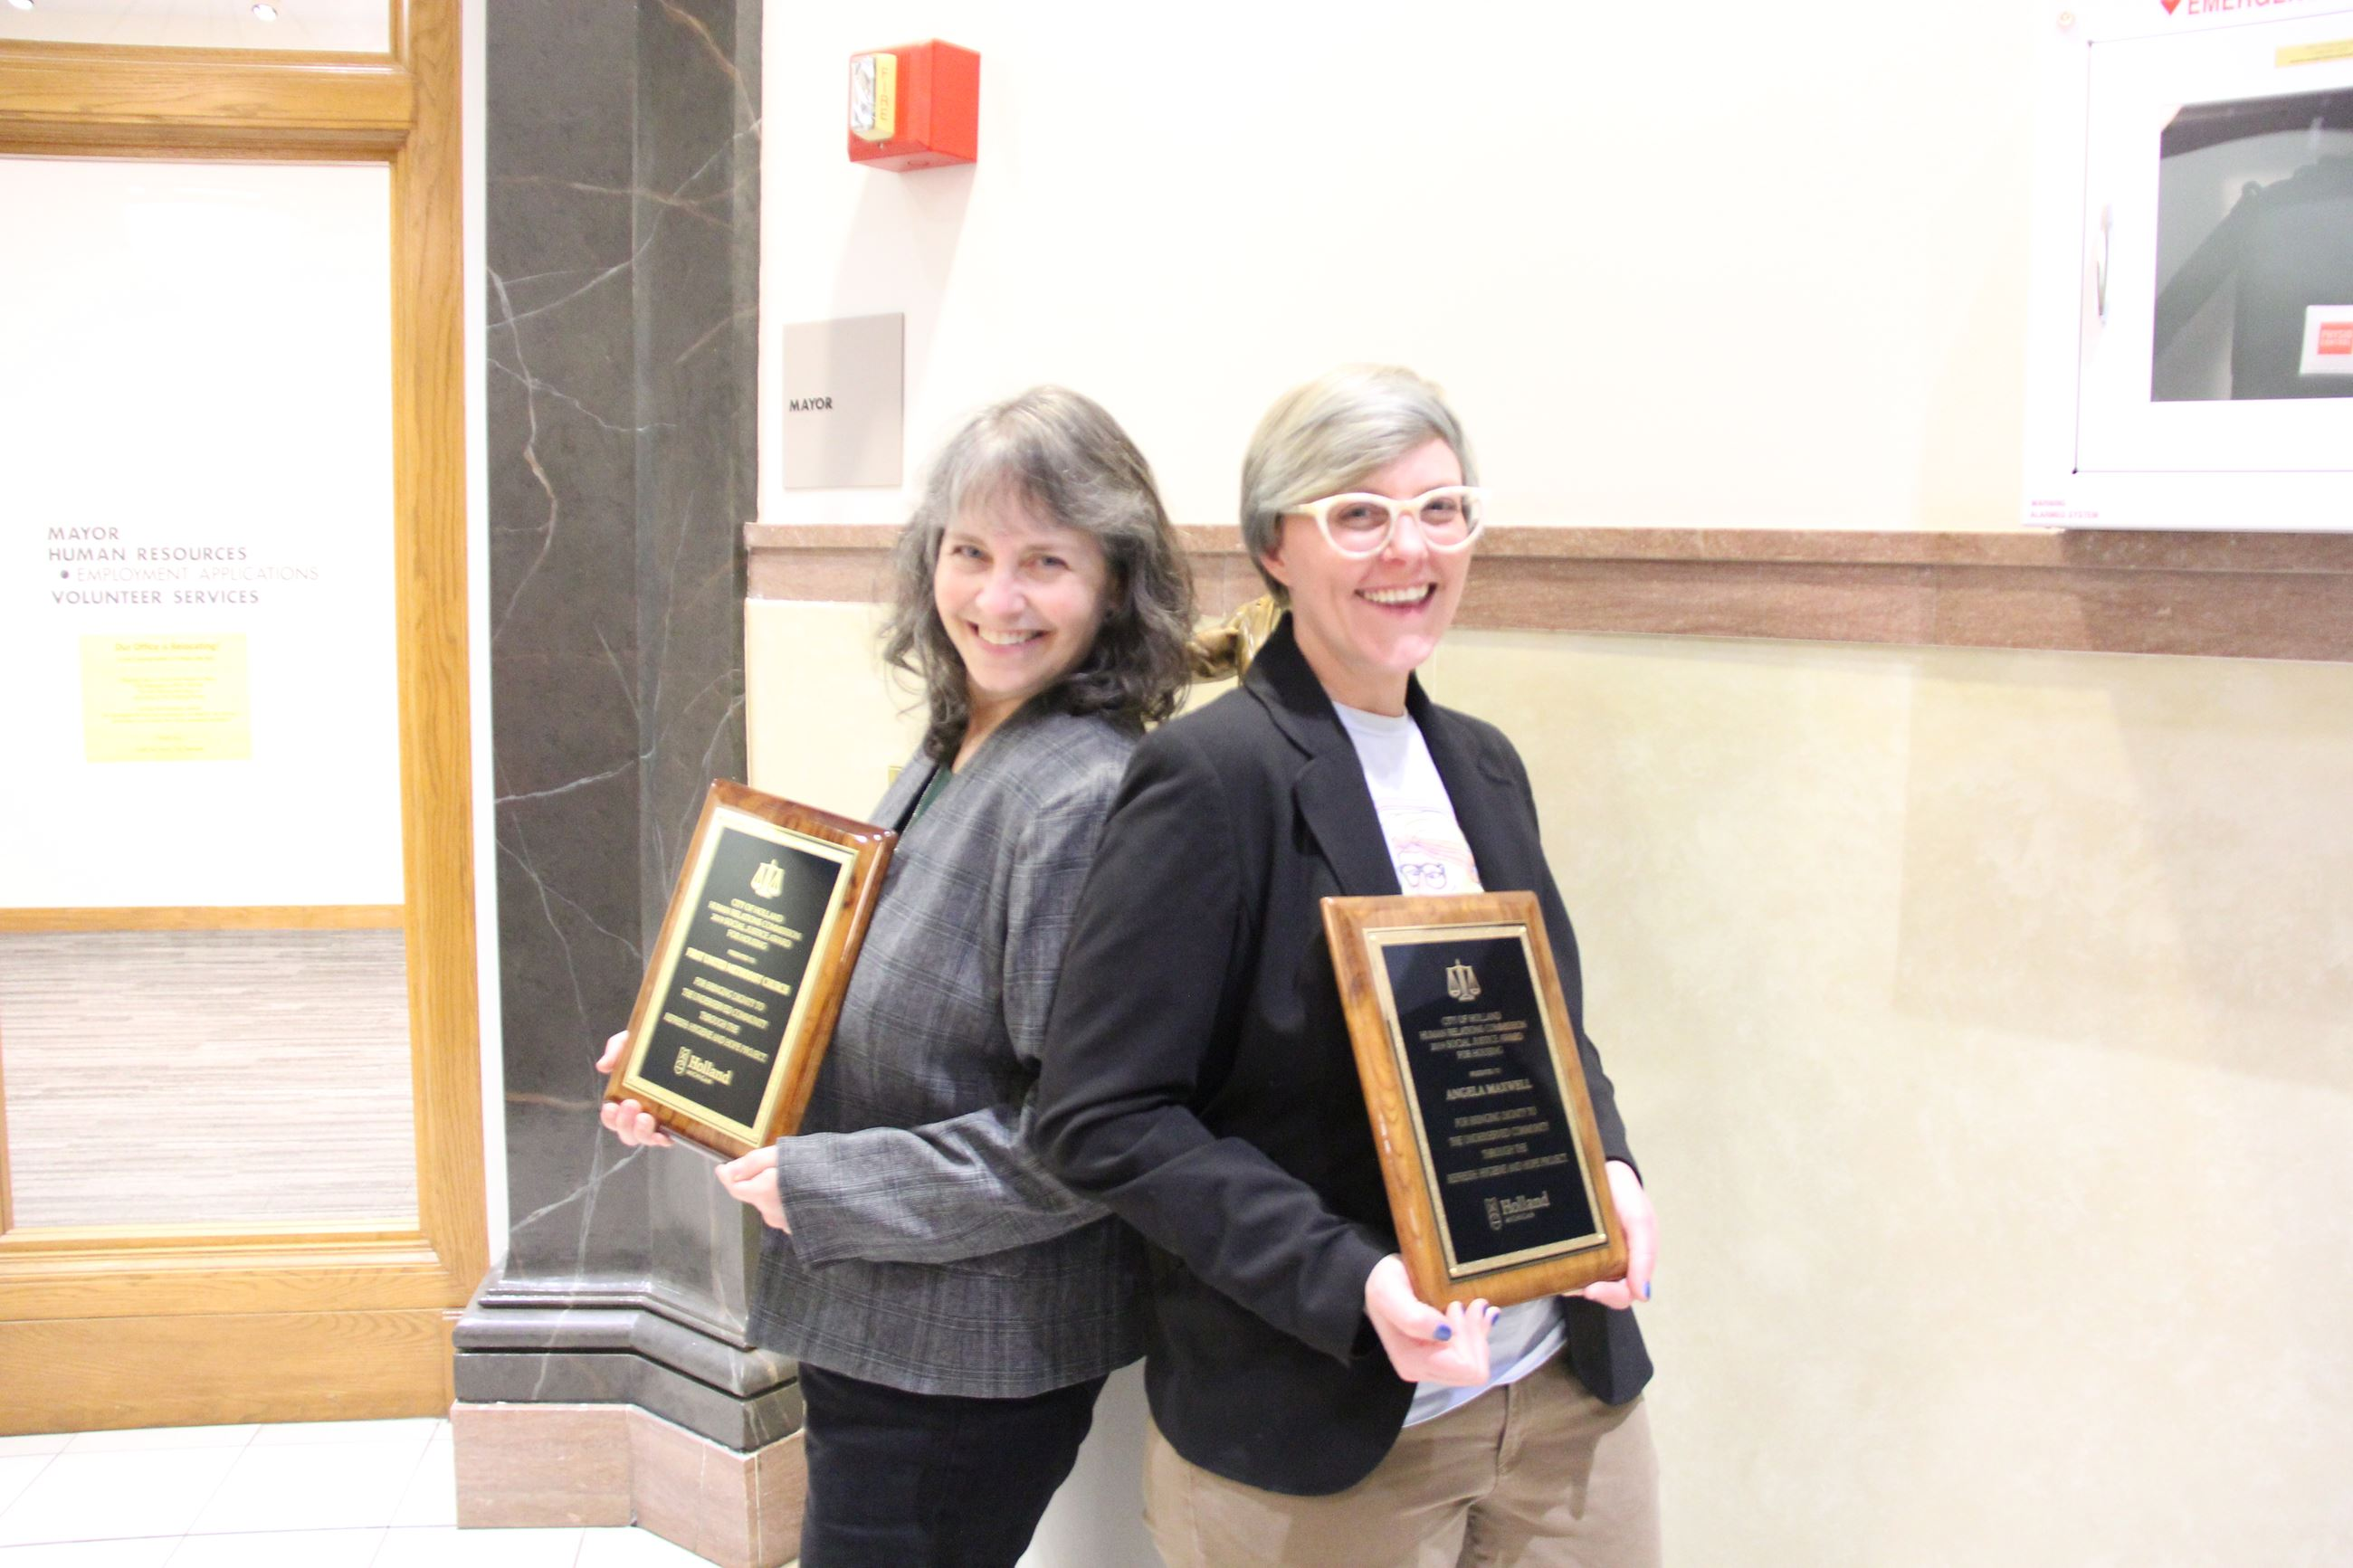 Social Justice Award for Housing Recipients Angela Maxwell and LuAnne Stanley Hook